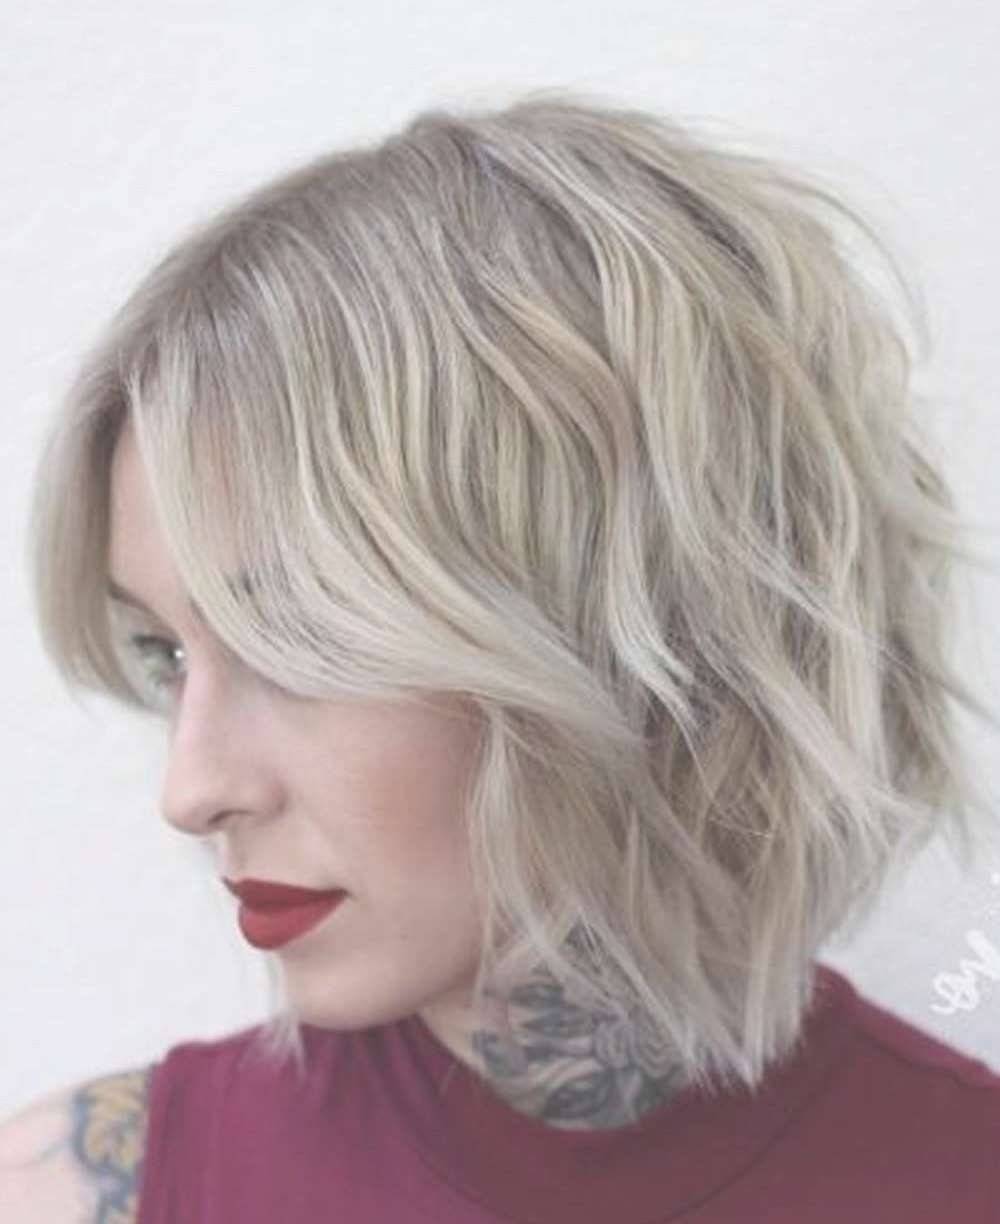 Cute Choppy Bob Hairstyles We Love Styles Awesome Short For Thin Intended For Most Popular Bob And Pixie Hairstyles (View 7 of 16)